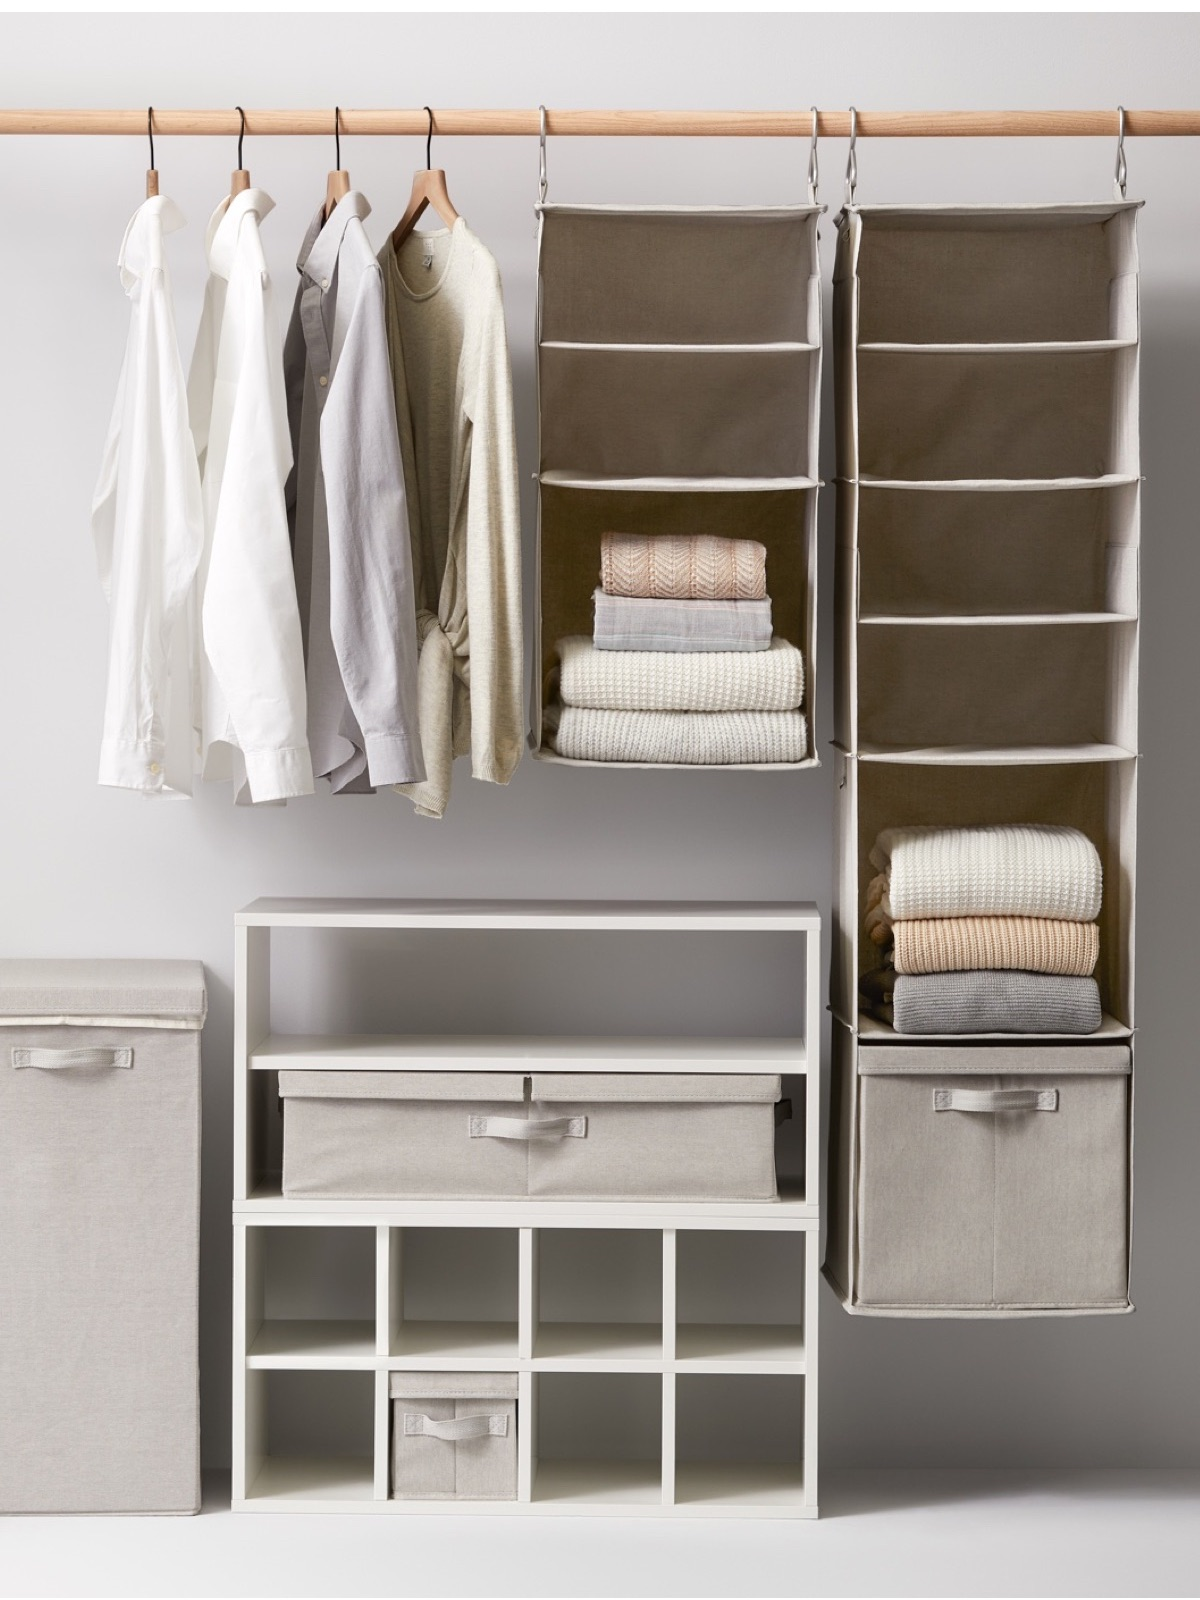 Closet featuring hanging storage, shelf, hamper and hanging dress shirts